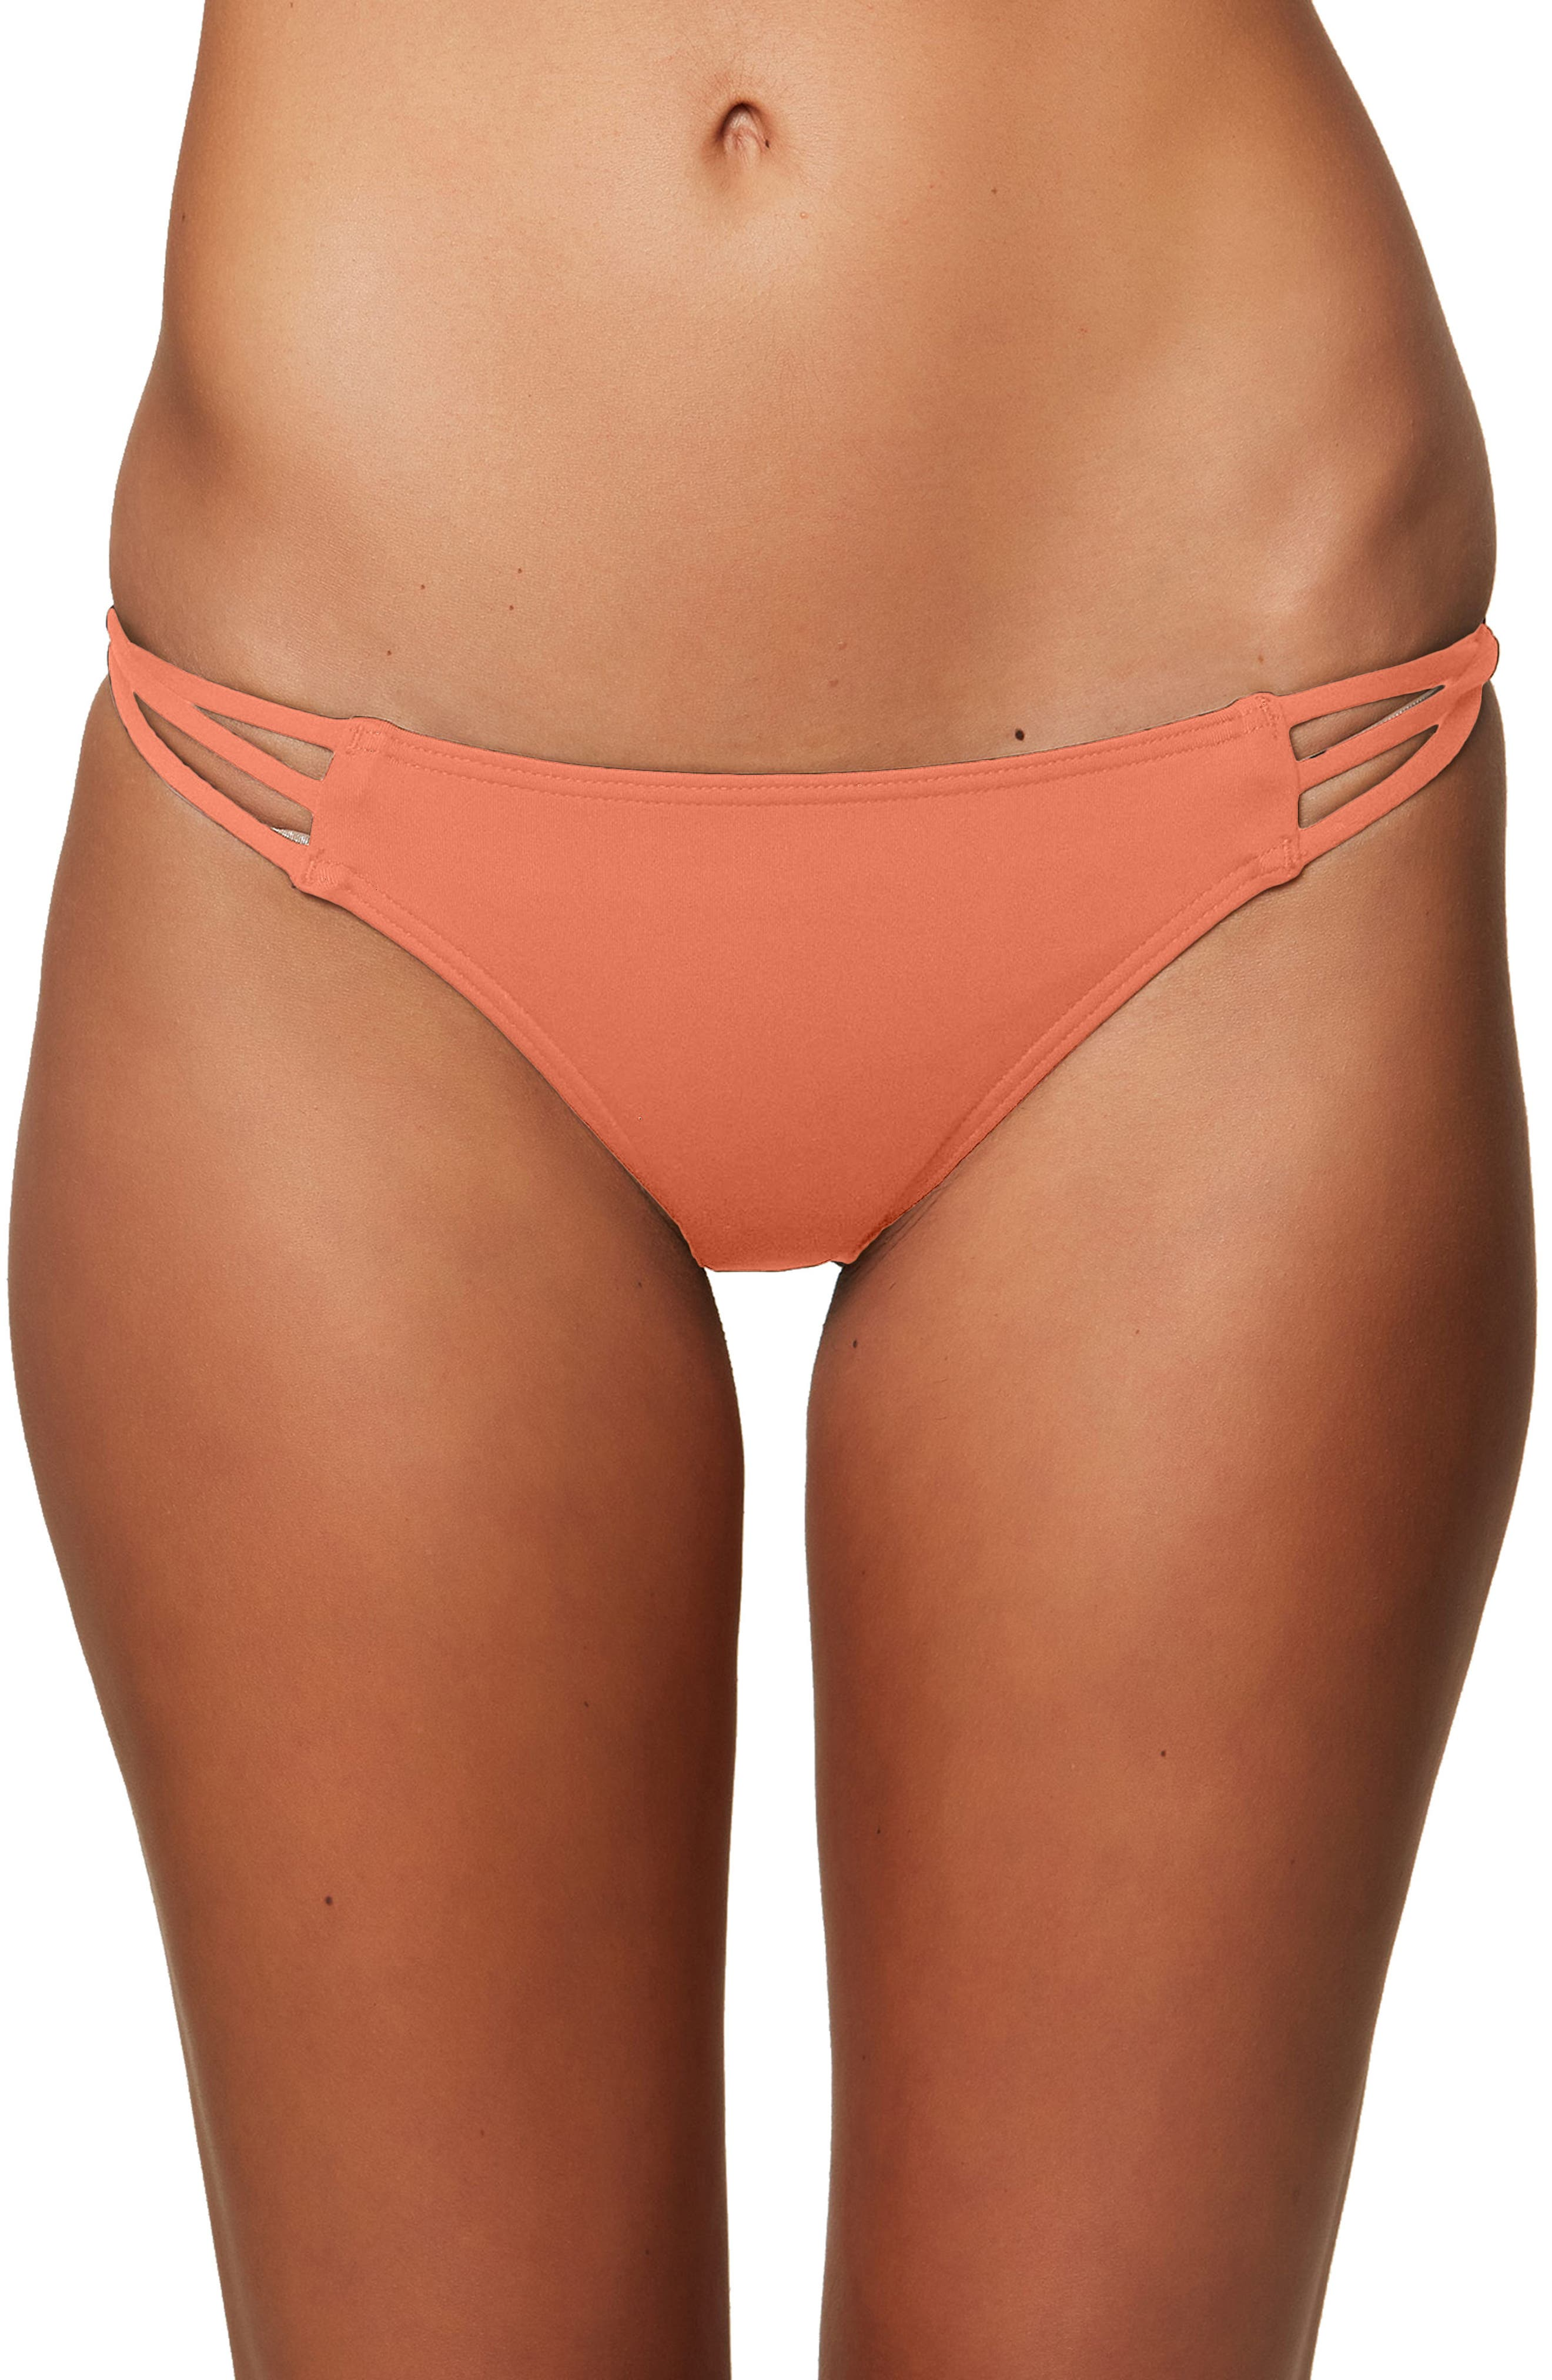 Salt Water Solids Strappy Bikini Bottoms,                             Main thumbnail 1, color,                             Coral Punch